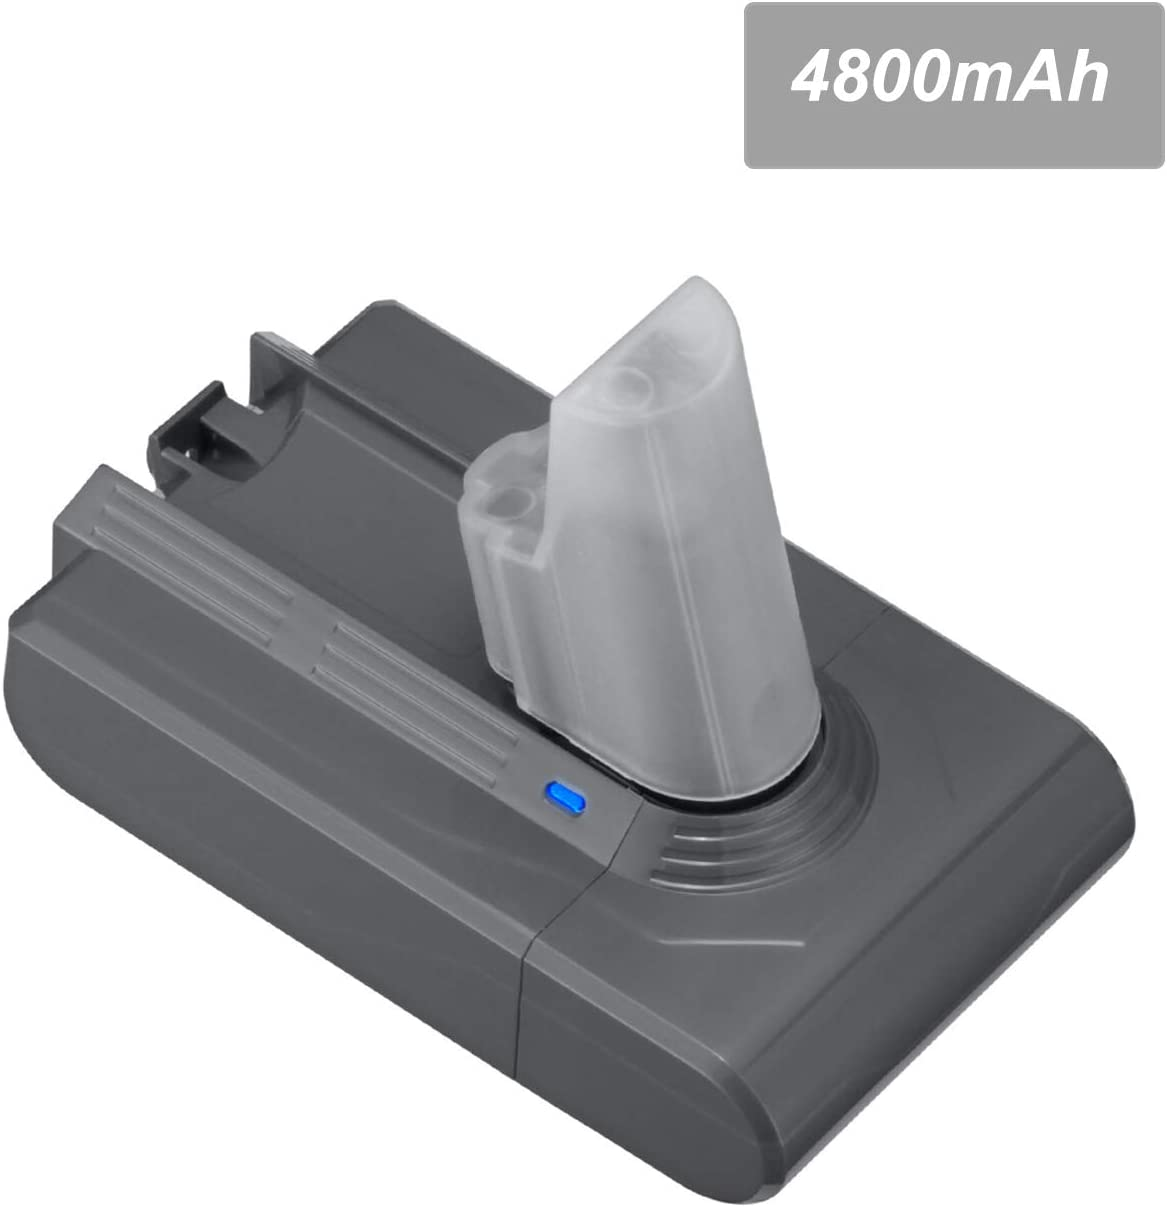 Dutyone 4.8Ah Replacement Battery Compatible With V6 21.6V 595 650 770 880 DC58 DC59 DC61 DC62 DC72 SV03 SV04 SV05 SV06 SV07 SV09 Animal Handheld Li-ion Vacuum Battery